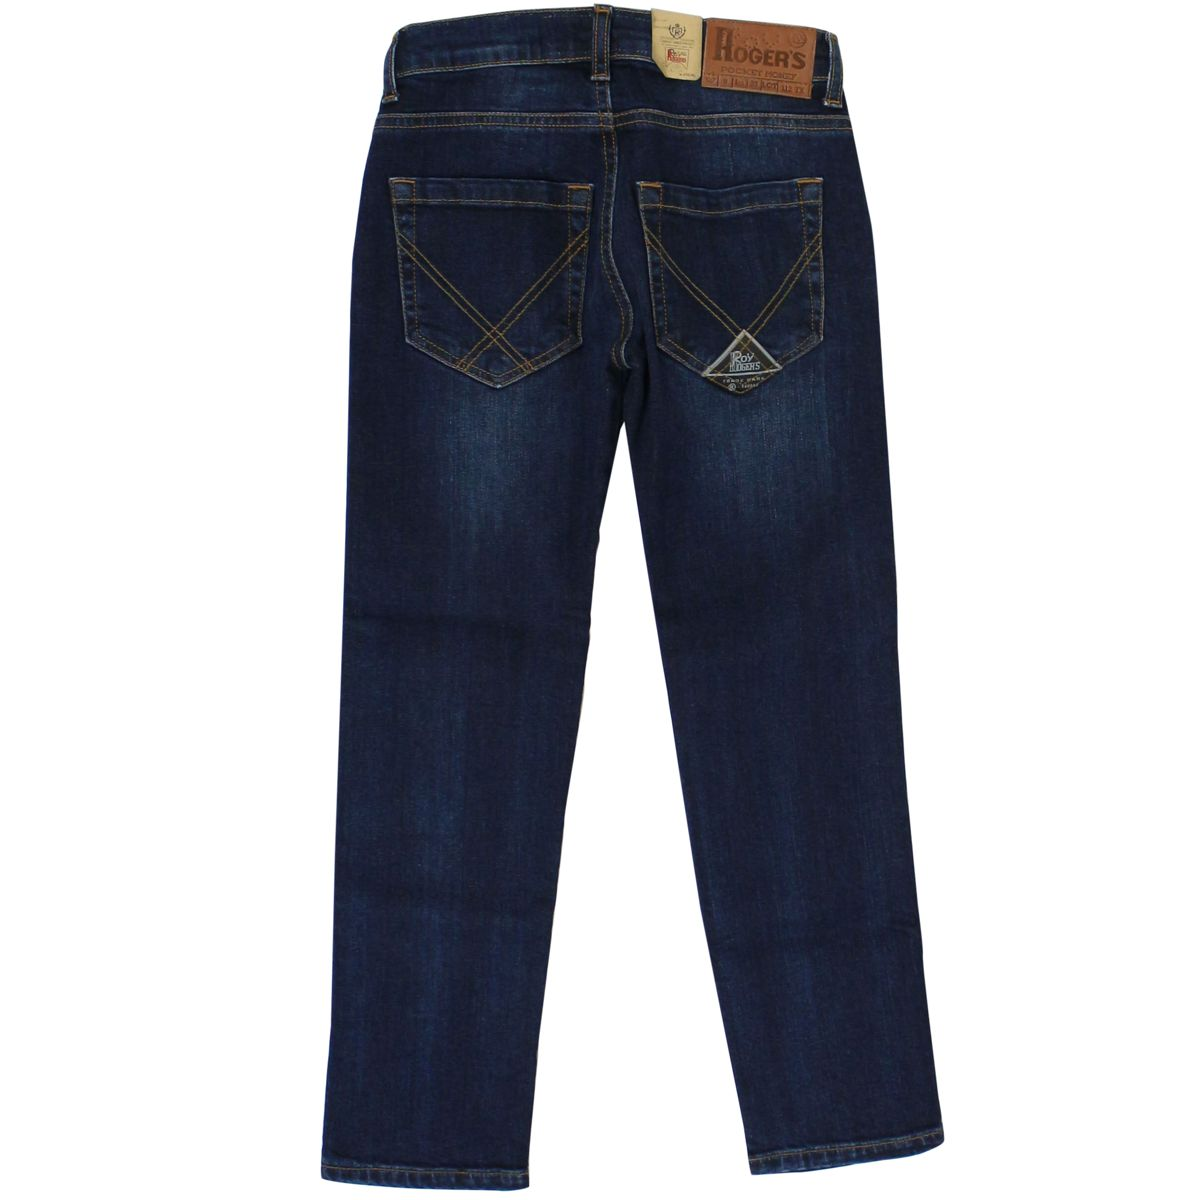 Jeans Sinclair Pater Dark denim ROY ROGER'S